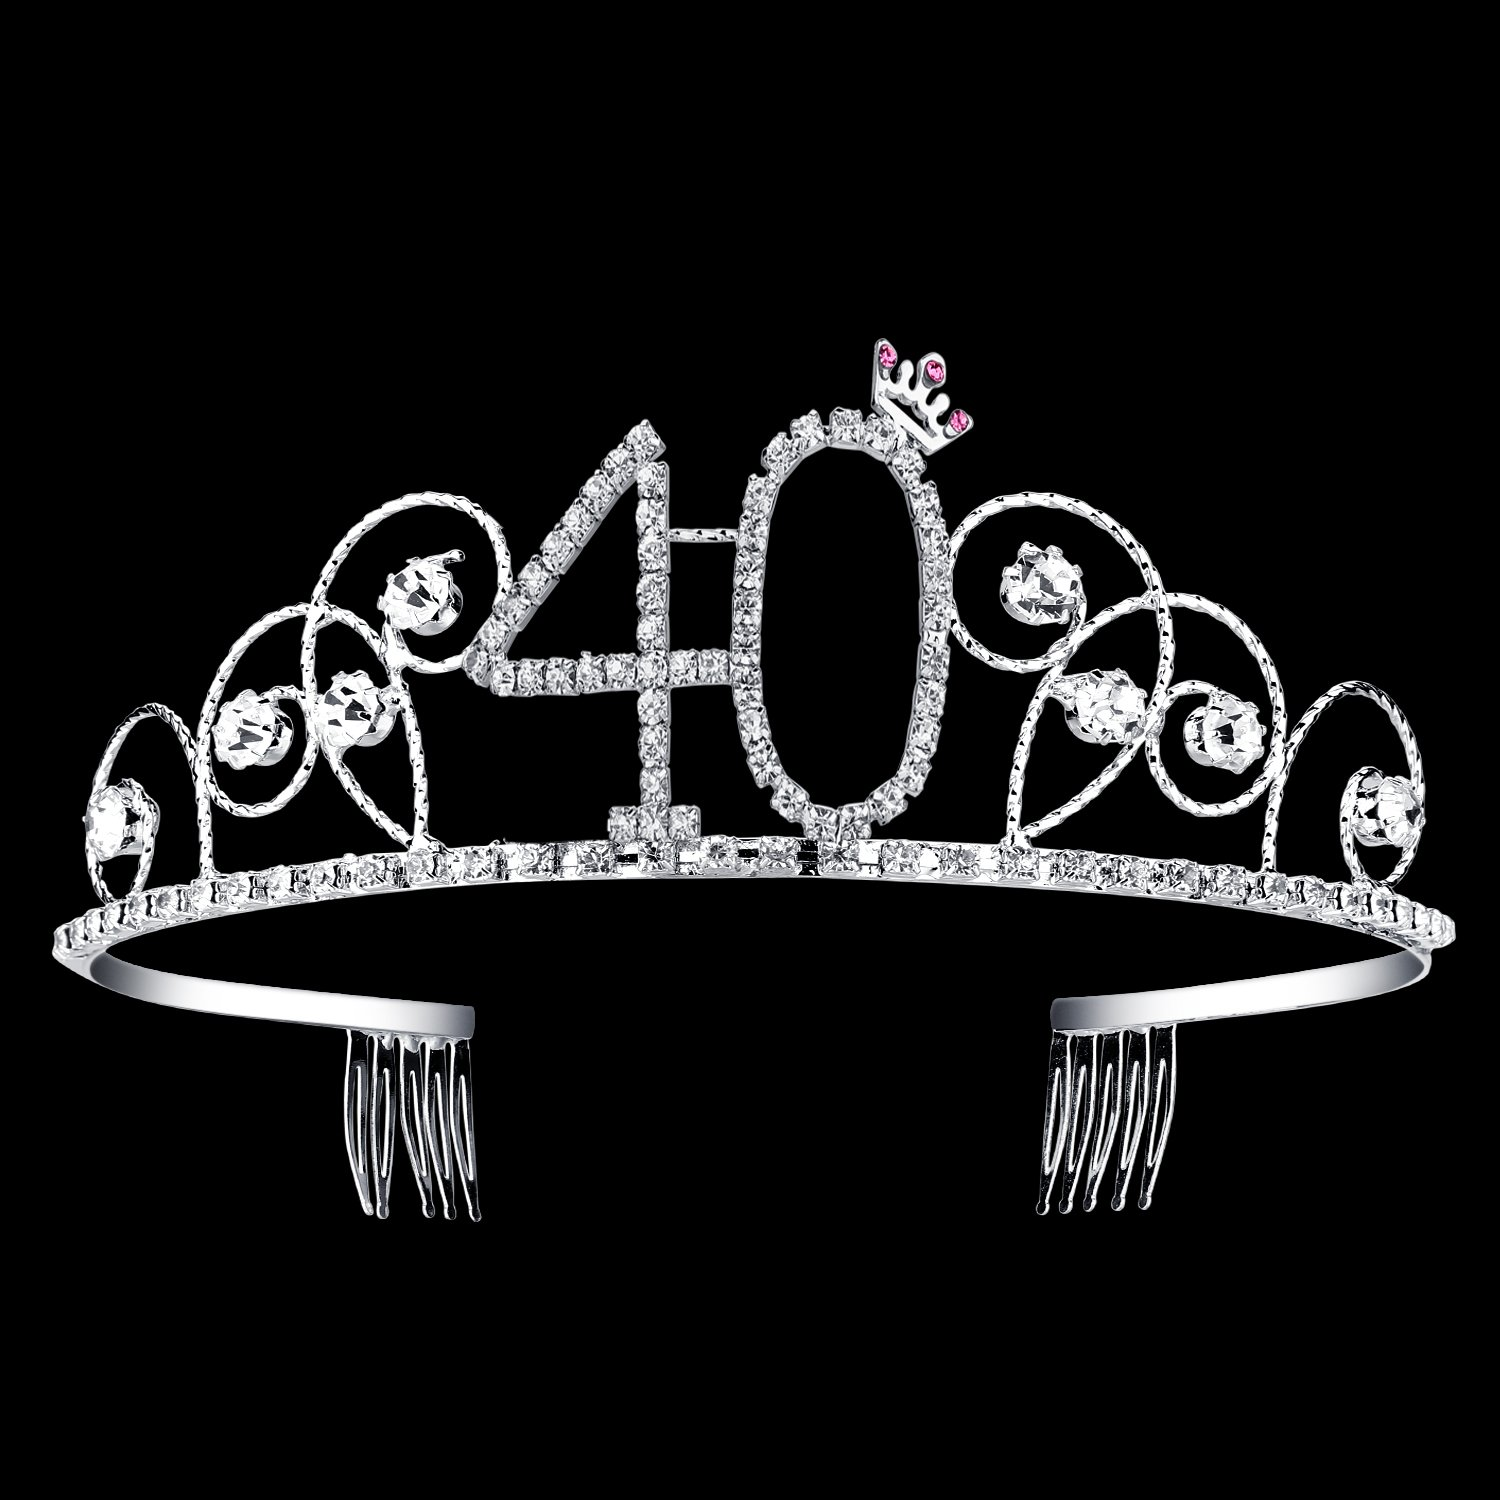 BABEYOND Crystal Tiara Birthday Crown Princess Crown Hair Accessories Silver Diamante Happy 40th Birthday (40 Birth) by BABEYOND